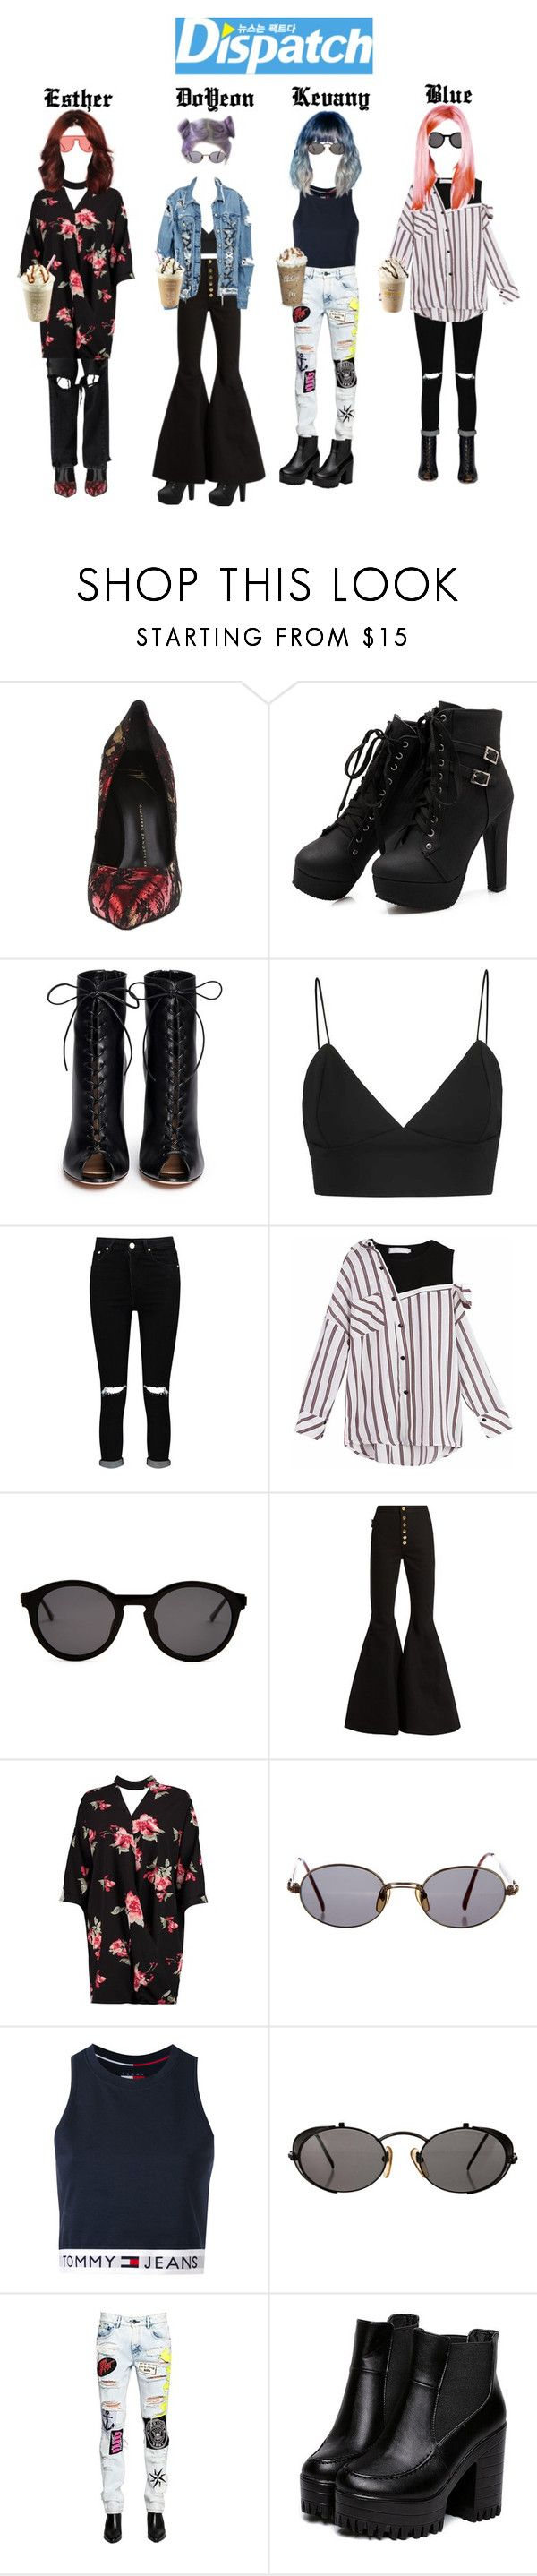 """DISPATCH:DLXX Member spotted at McDonald"" by officialdlxx ❤ liked on Polyvore featuring Giuseppe Zanotti, Gianvito Rossi, Boohoo, Thierry Lasry, E L L E R Y, Unravel, Jean-Paul Gaultier, Tommy Hilfiger and Filles à papa"